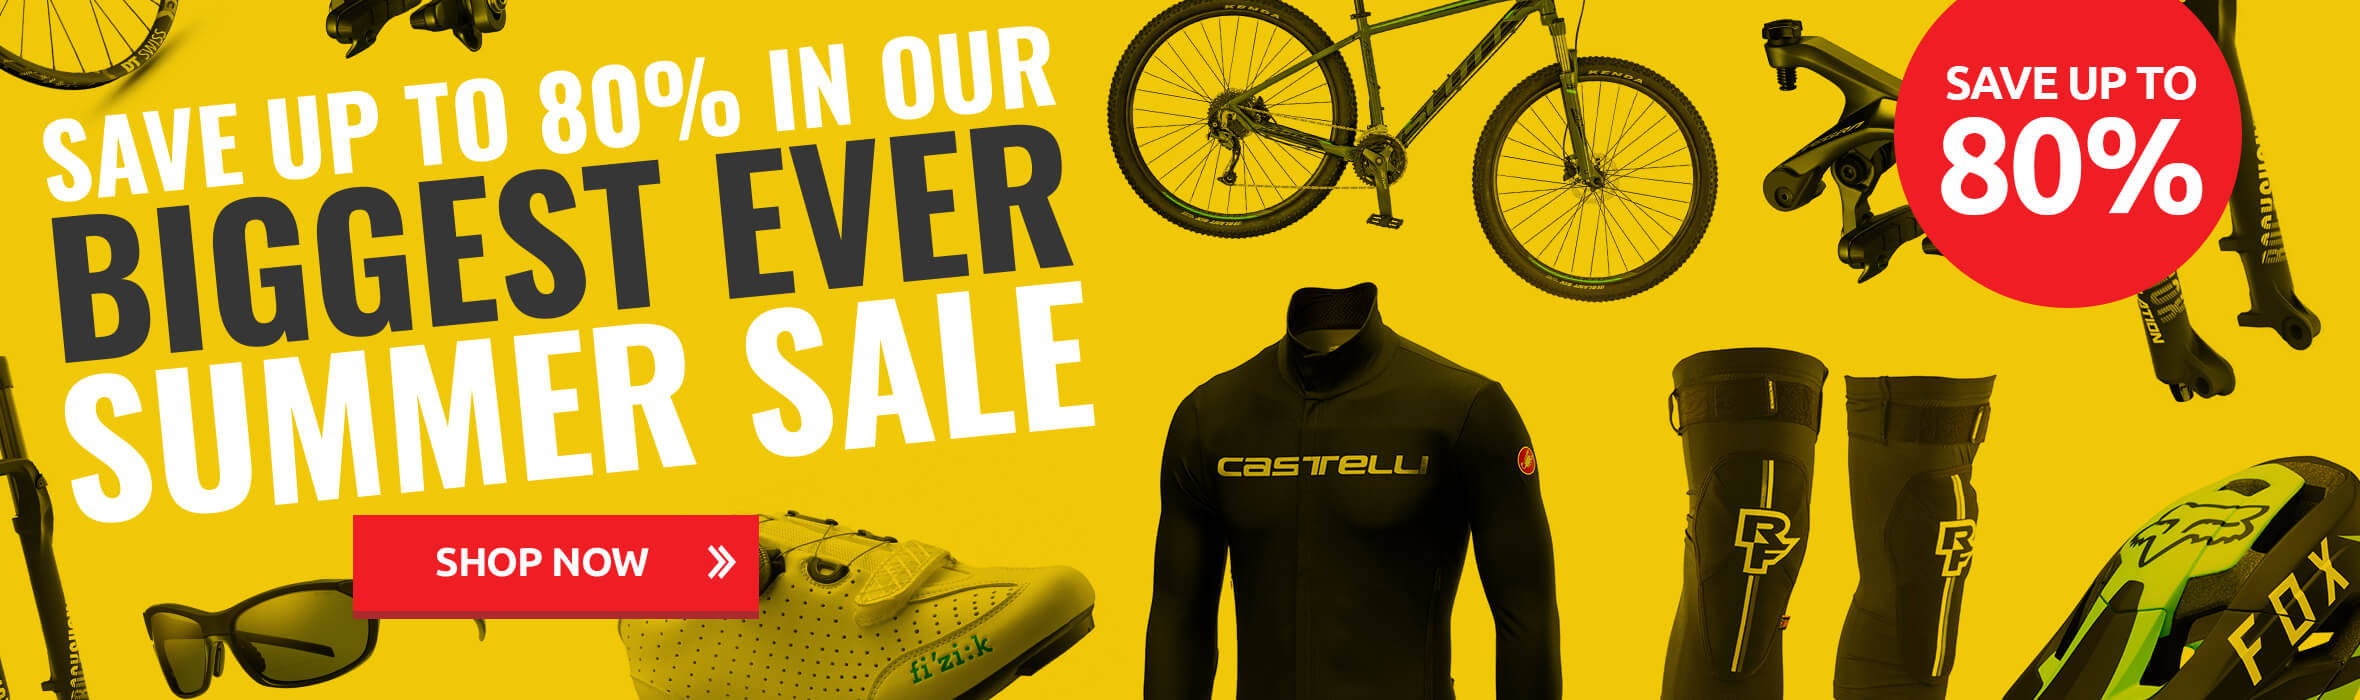 Save up to 80% in Our Biggest Ever Summer Sale